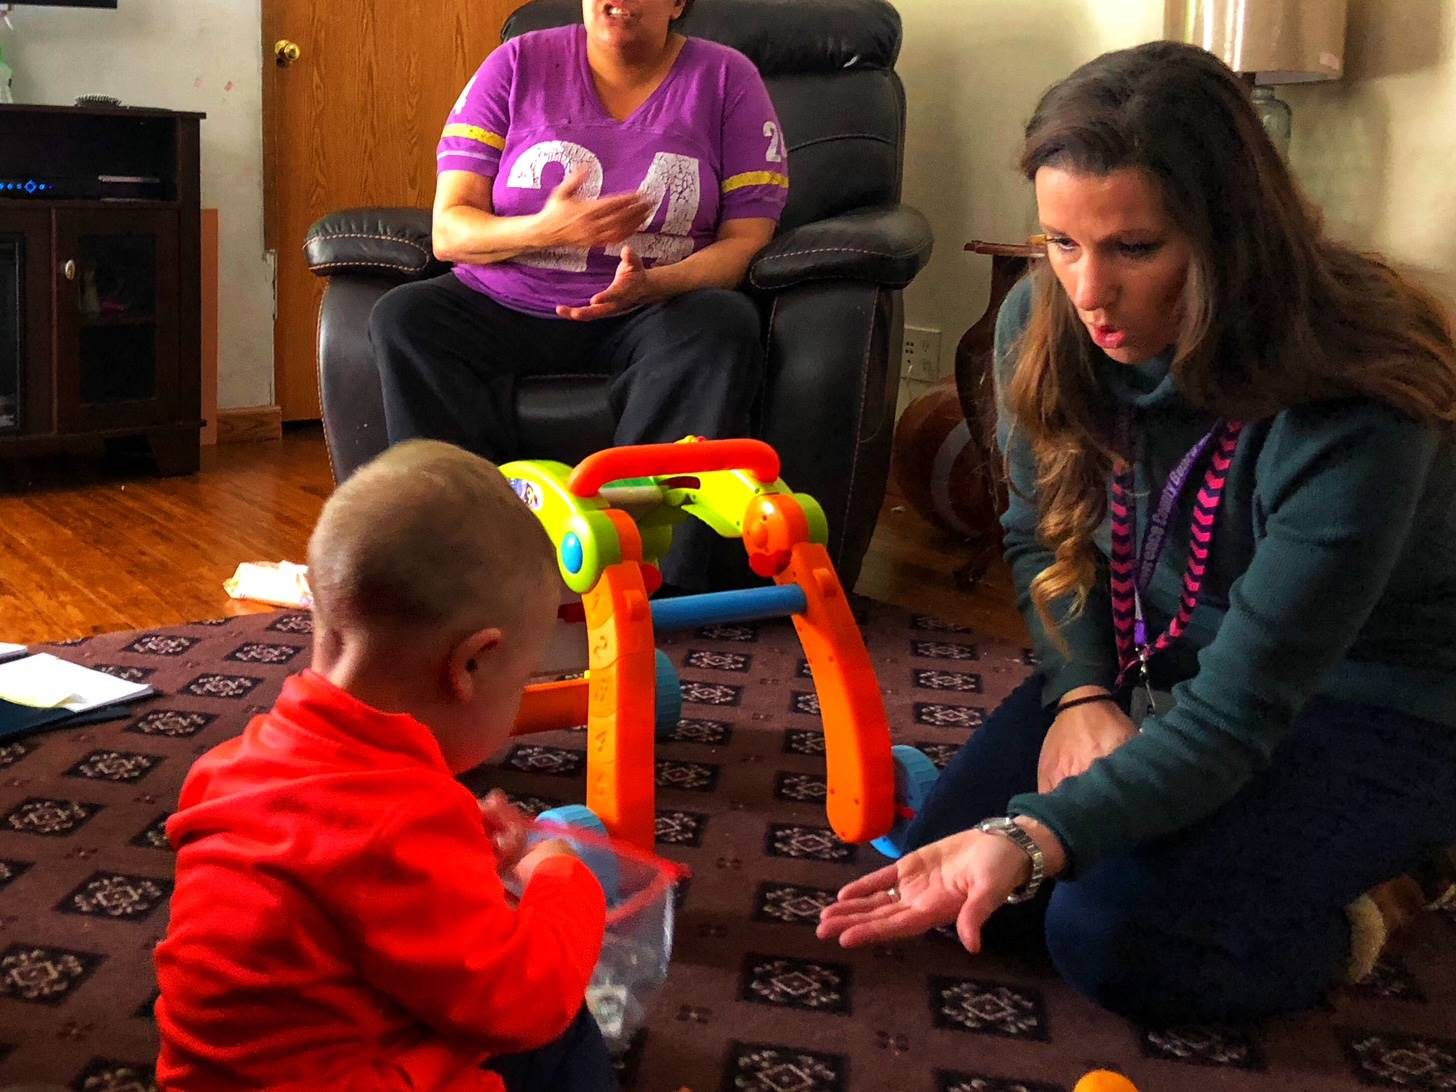 Developmental specialist meets with family